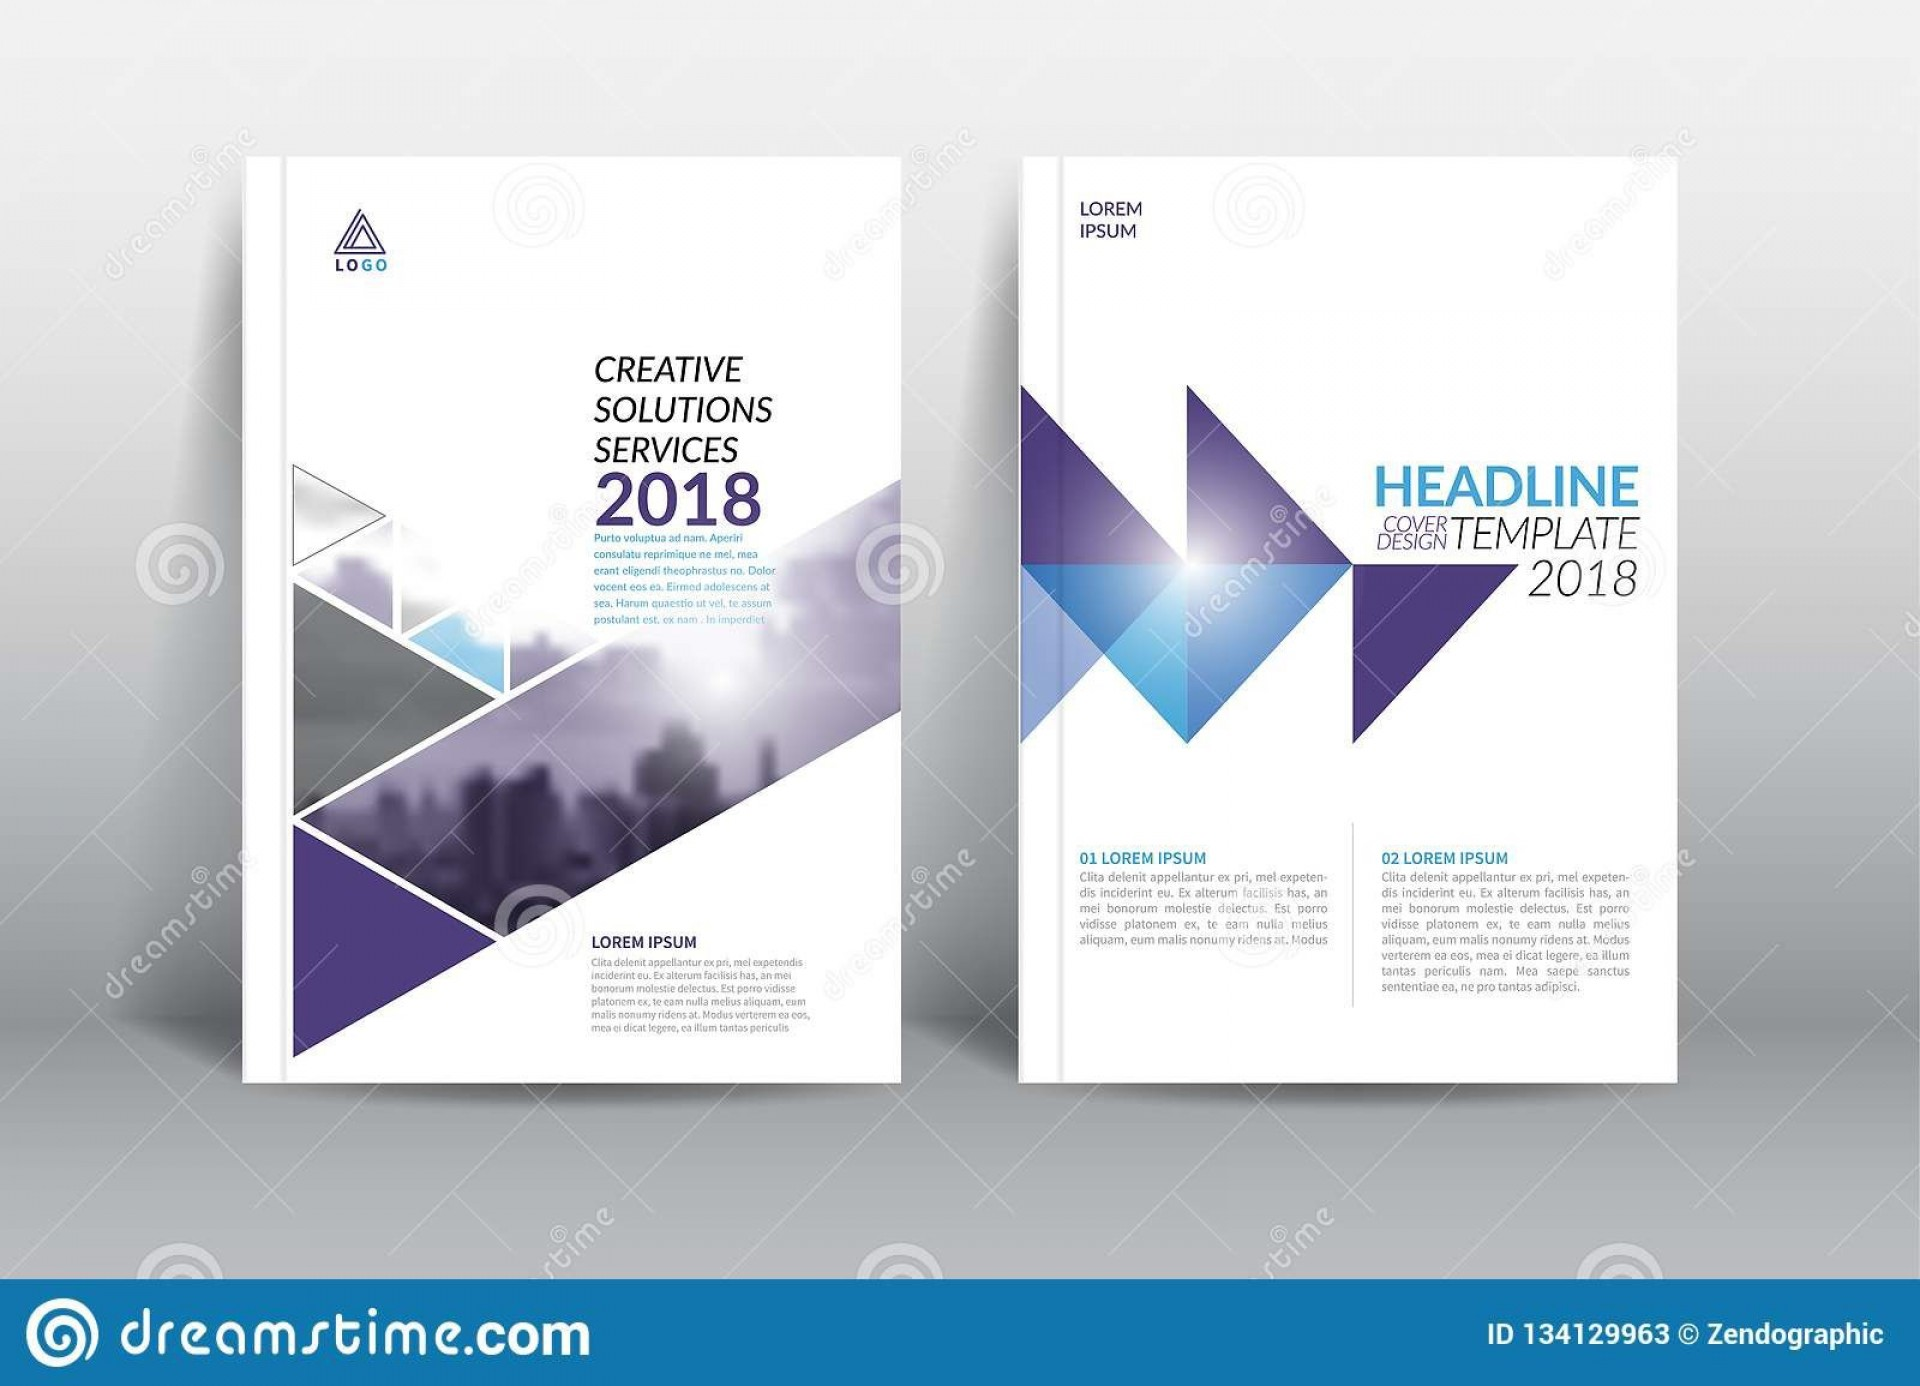 007 Frightening Free Download Annual Report Cover Design Template Example  Indesign In Word1920